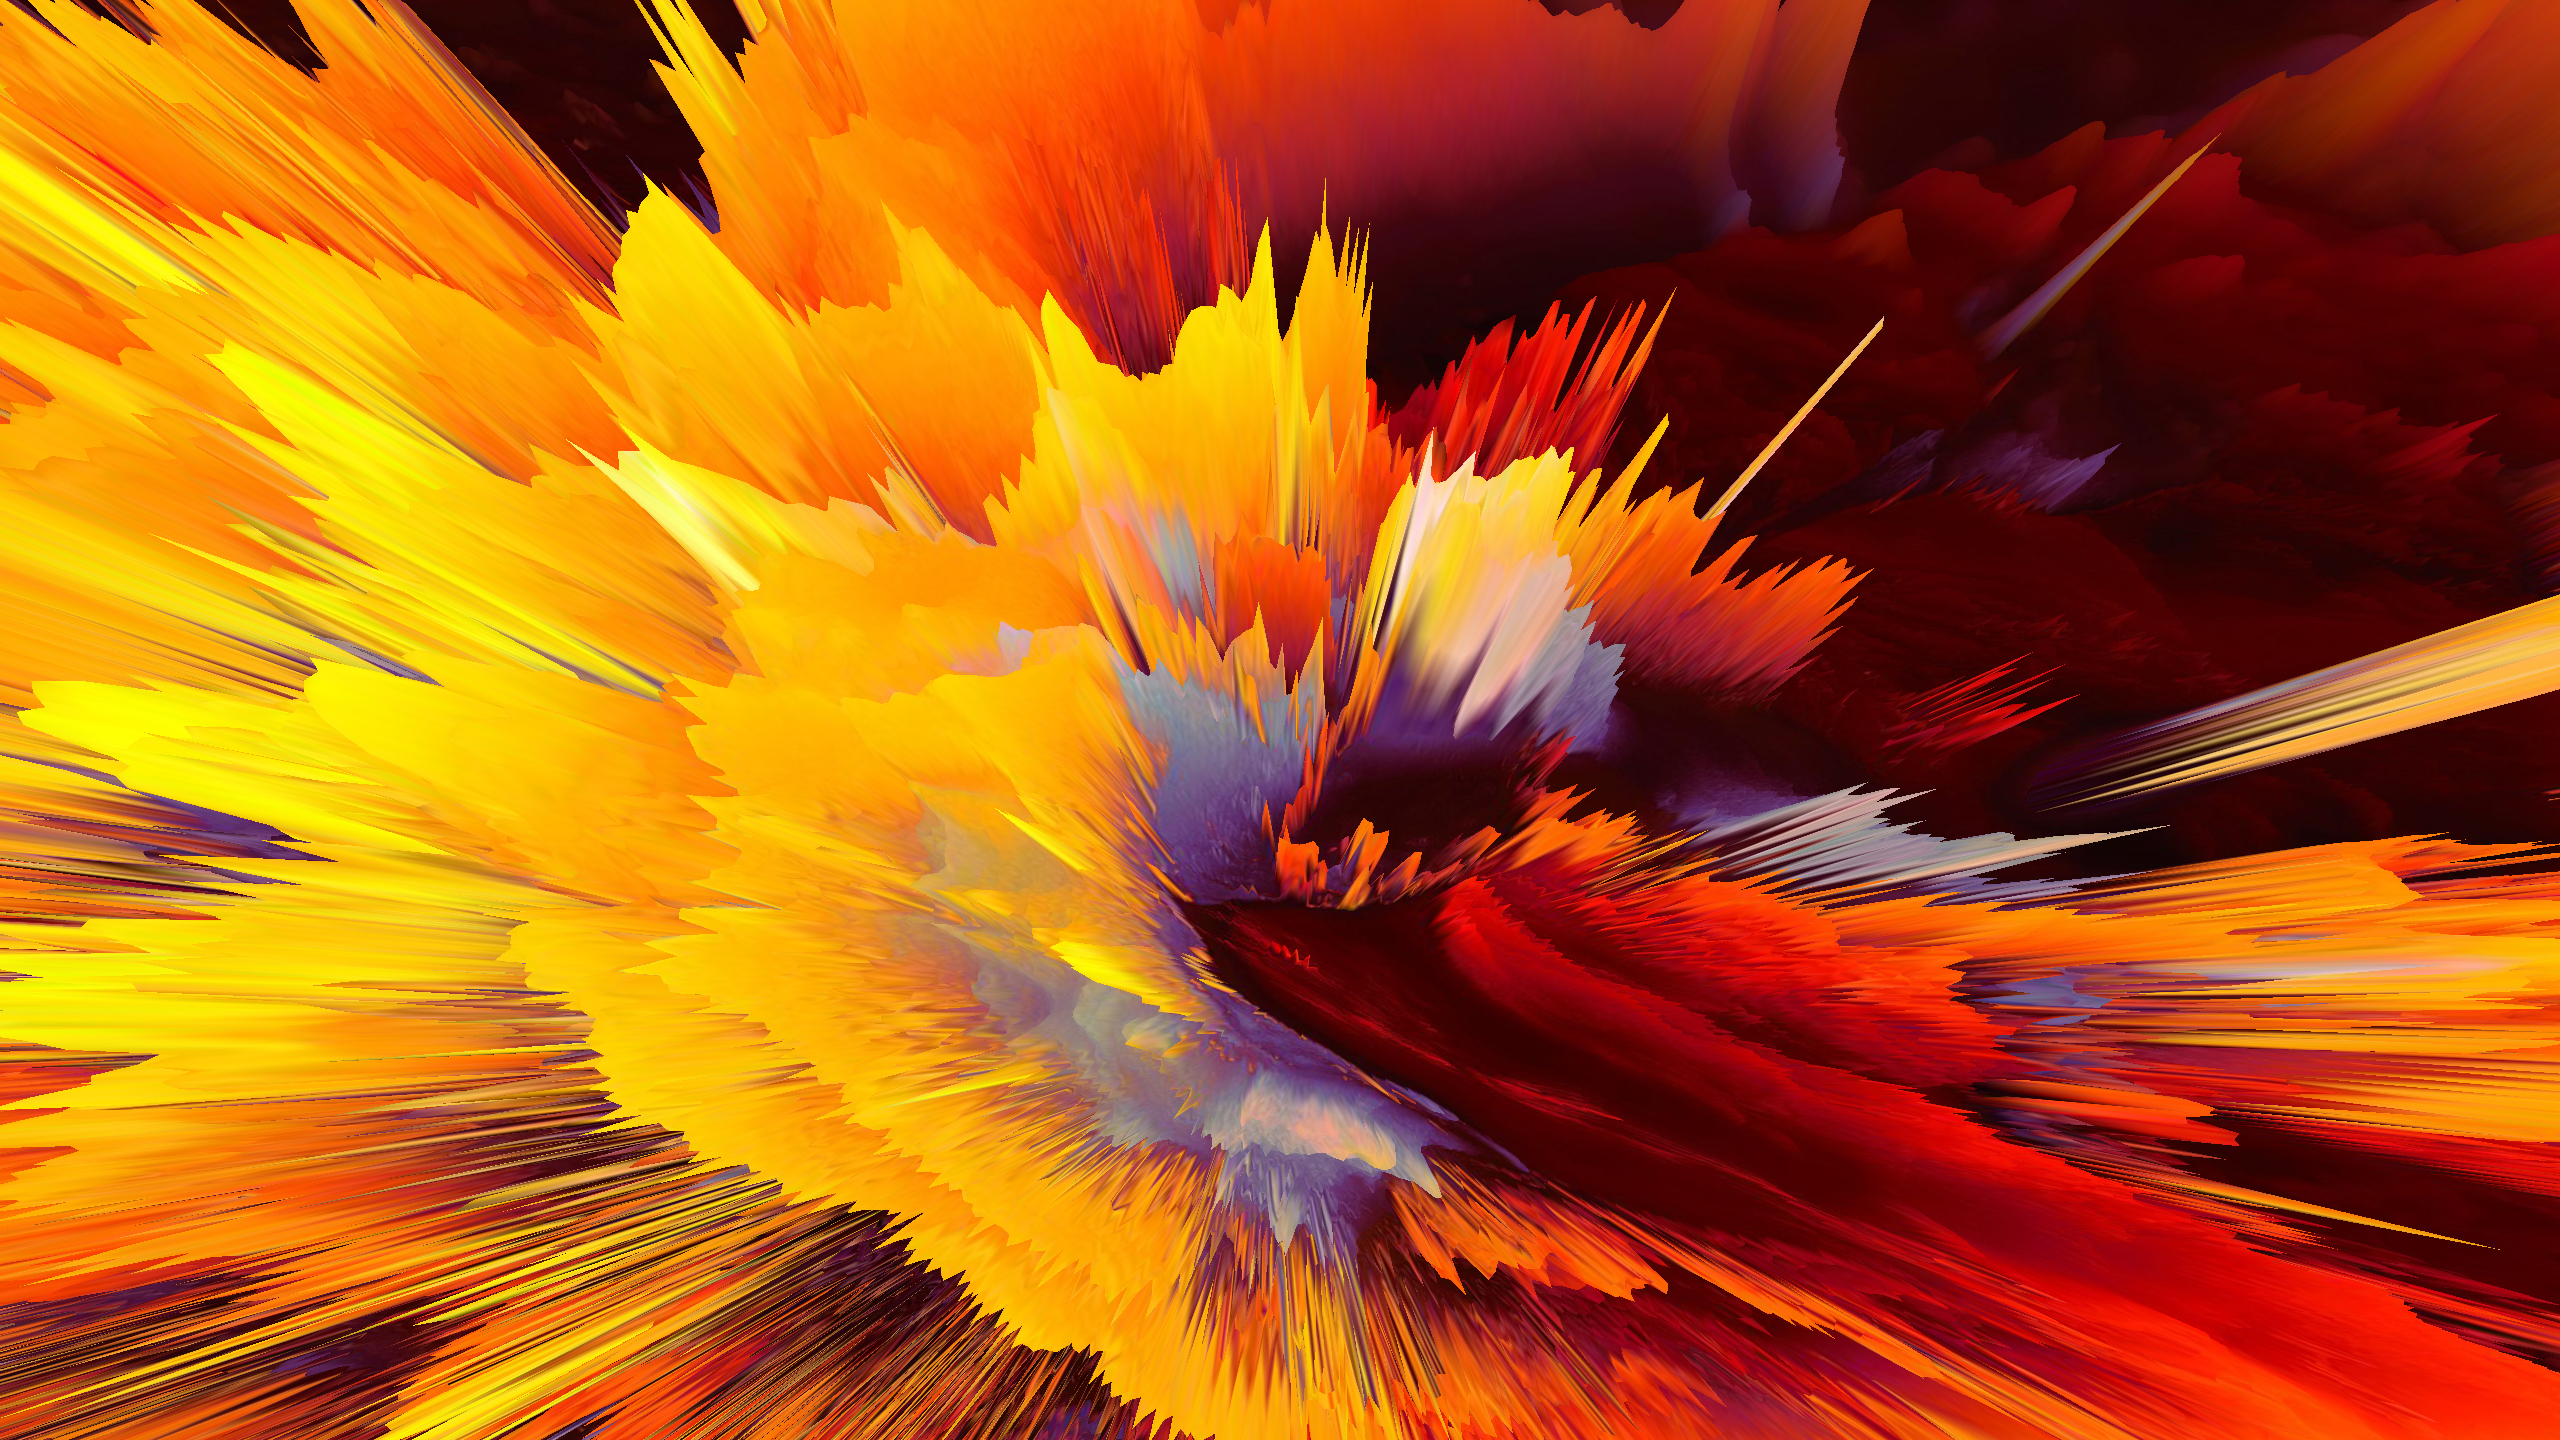 Damage Colors Abstract Hd Abstract 4k Wallpapers Images